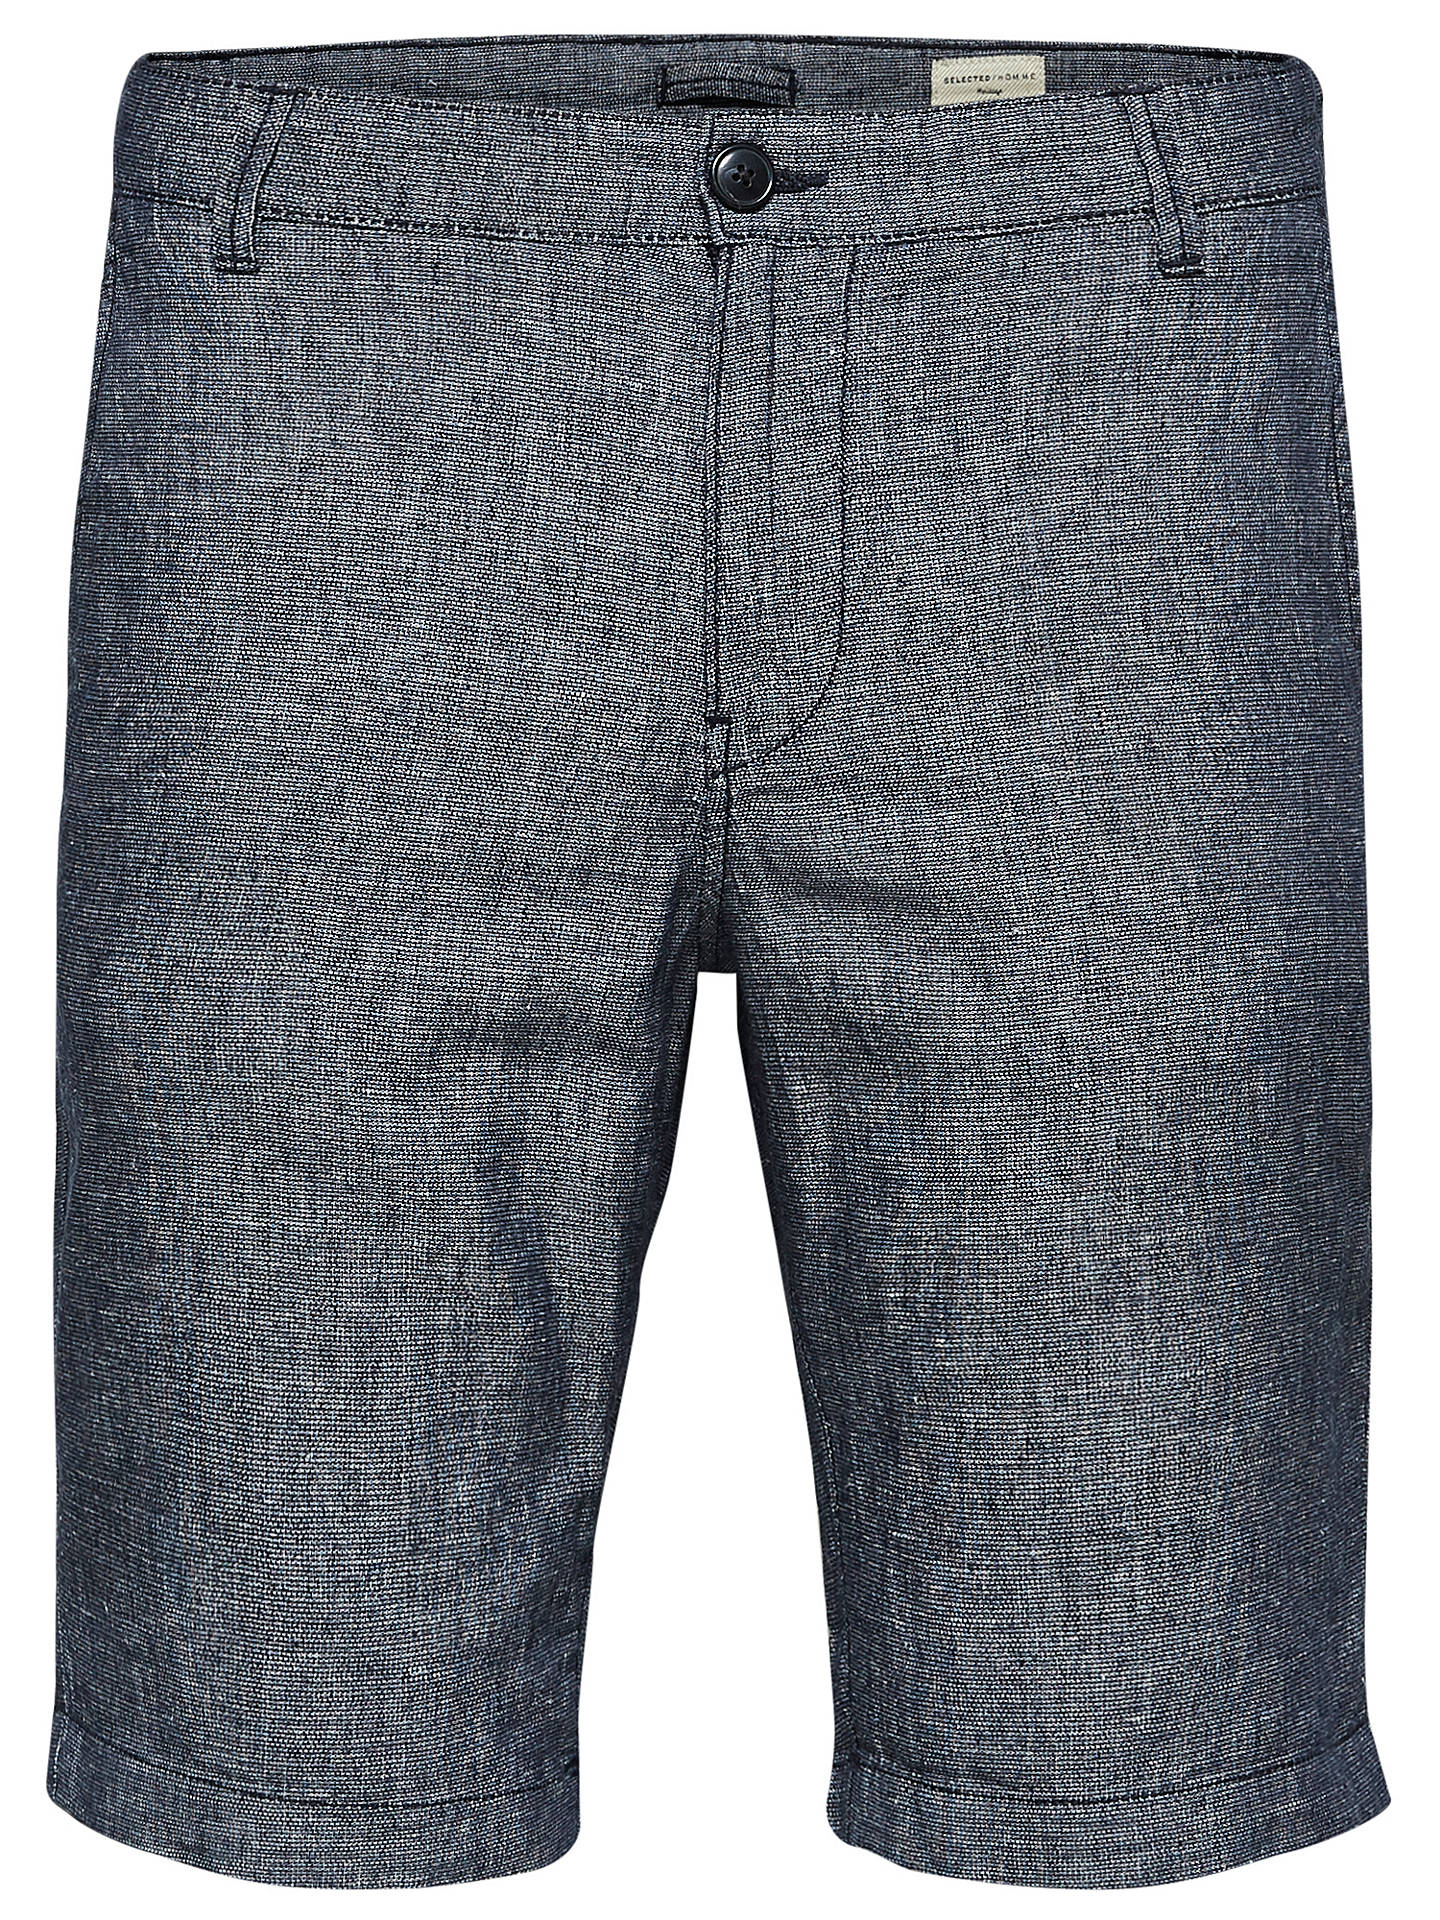 BuySelected Homme Shhparis Linen Shorts, Dark Sapphire, M Online at johnlewis.com